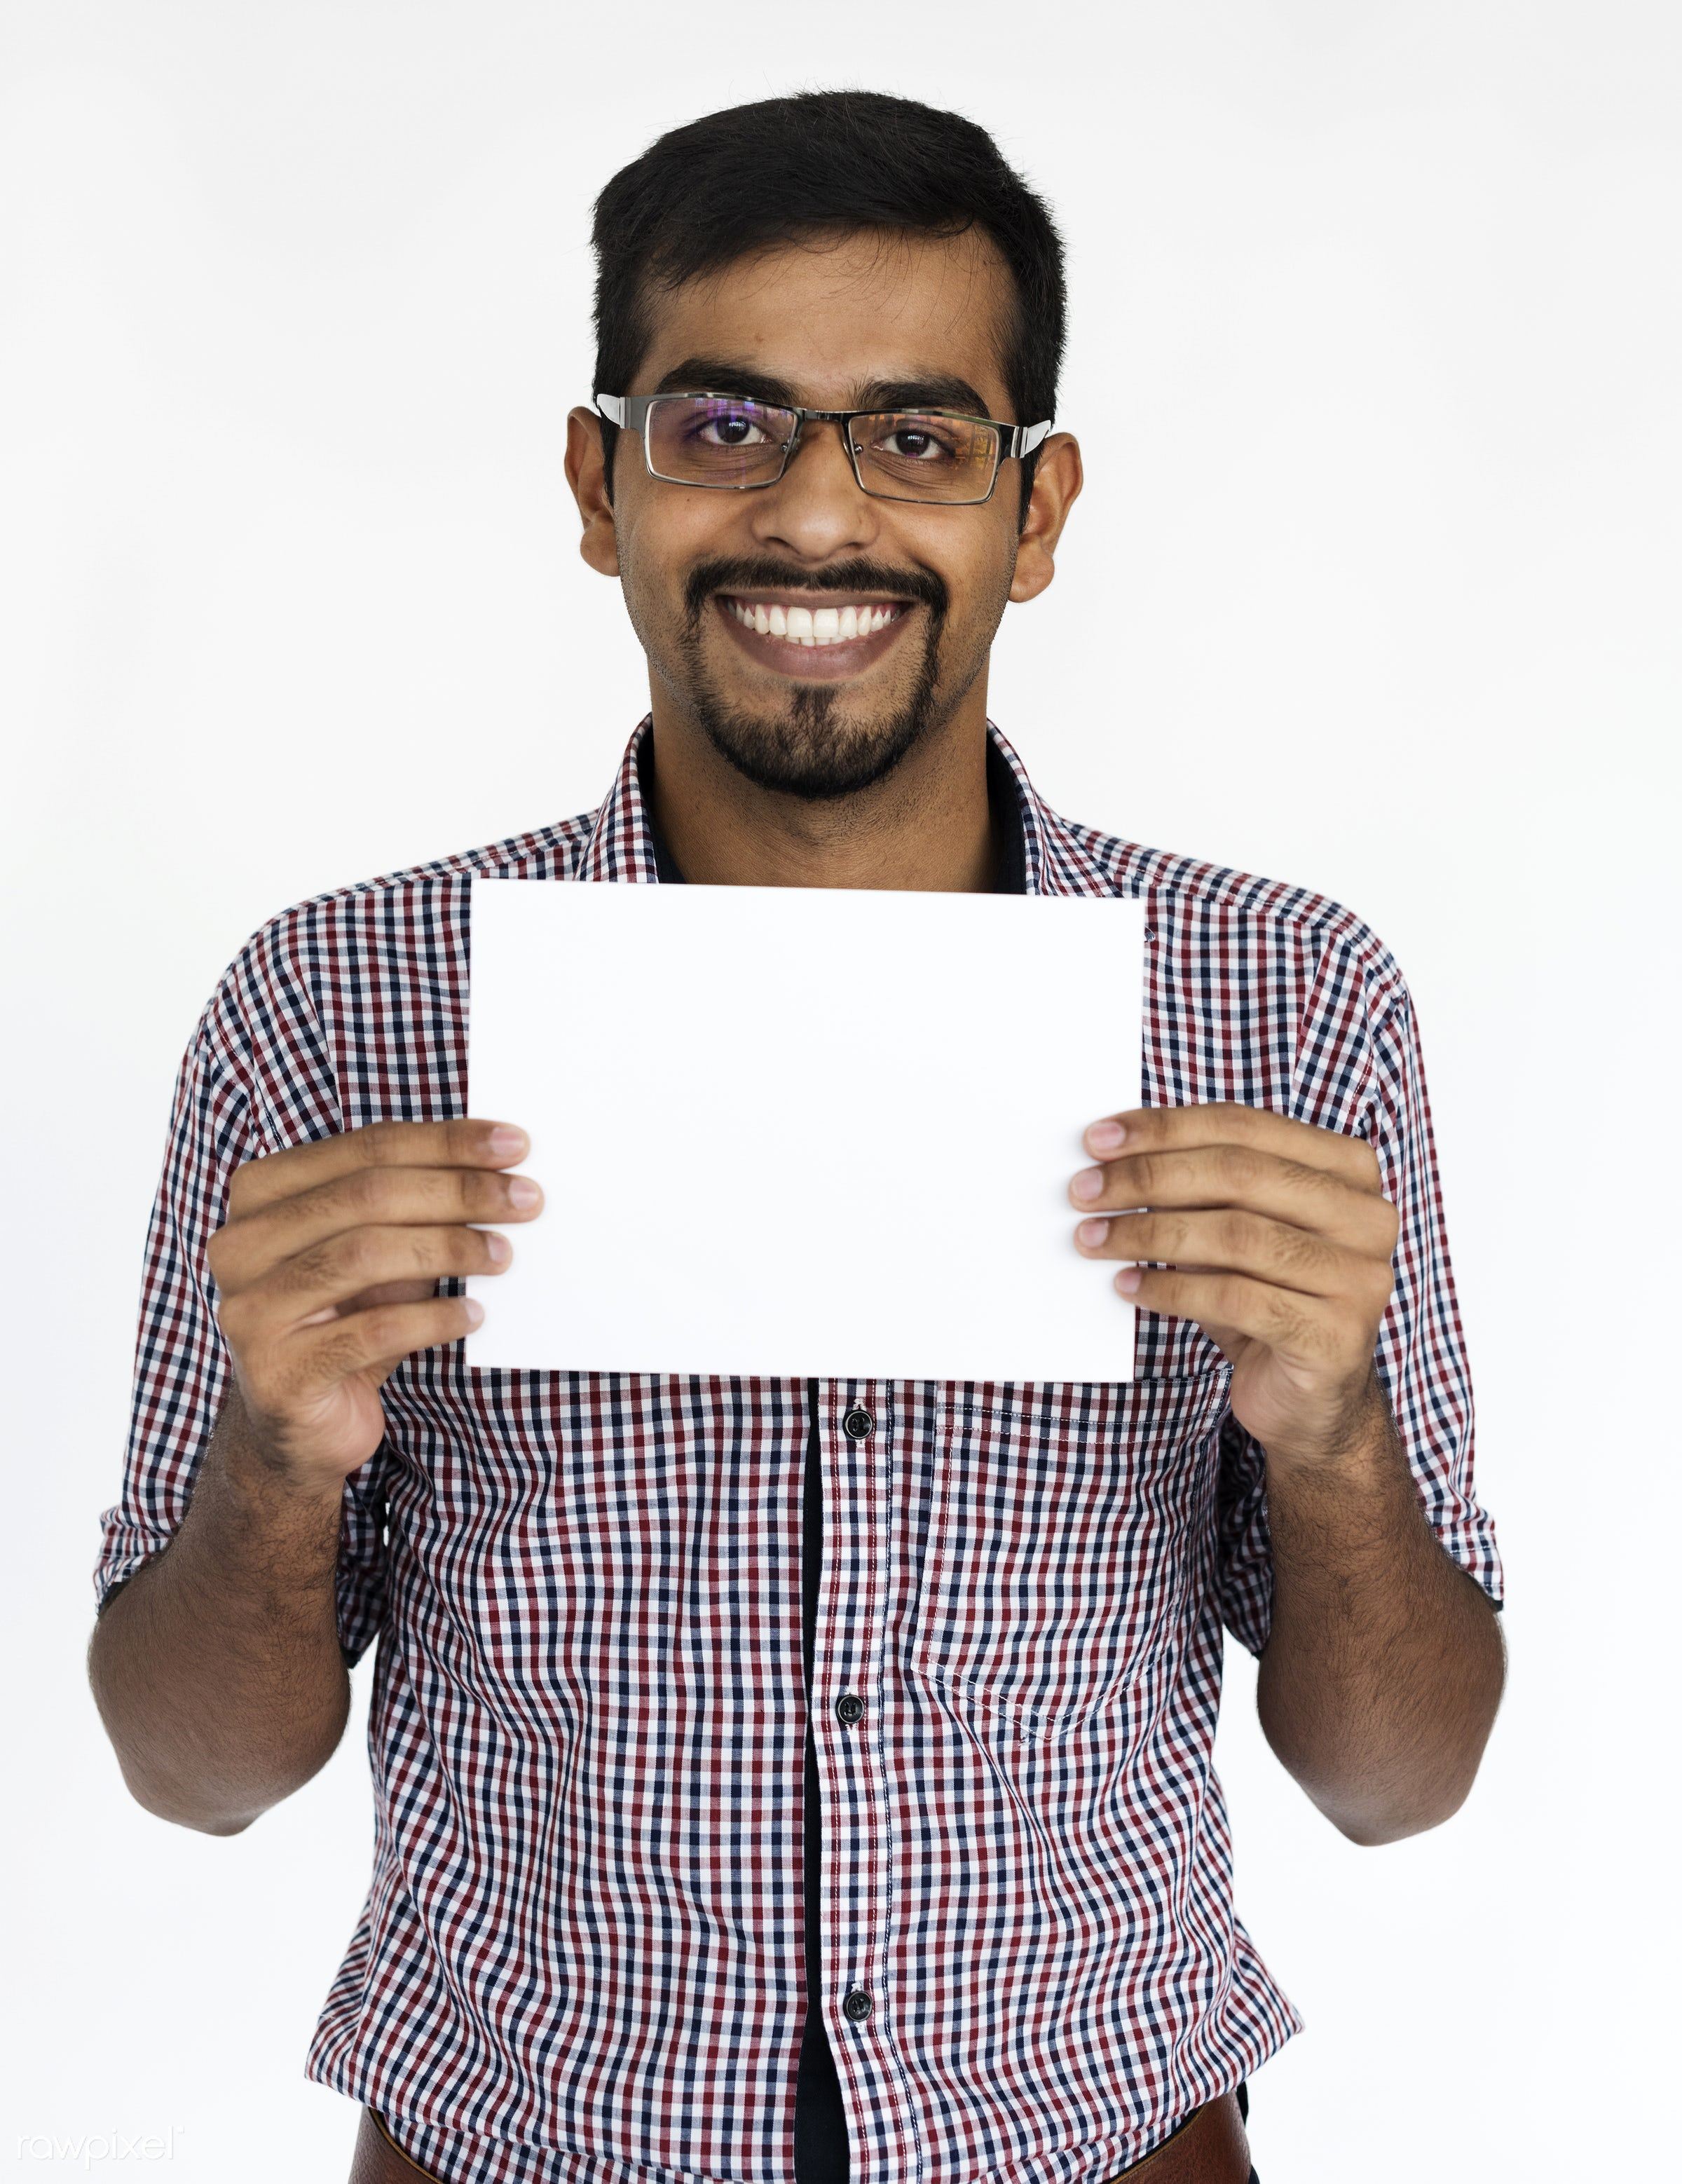 studio, person, holding, show, people, displaying, placard, empty, positive, smile, cheerful, smiling, copy, isolated, hold...